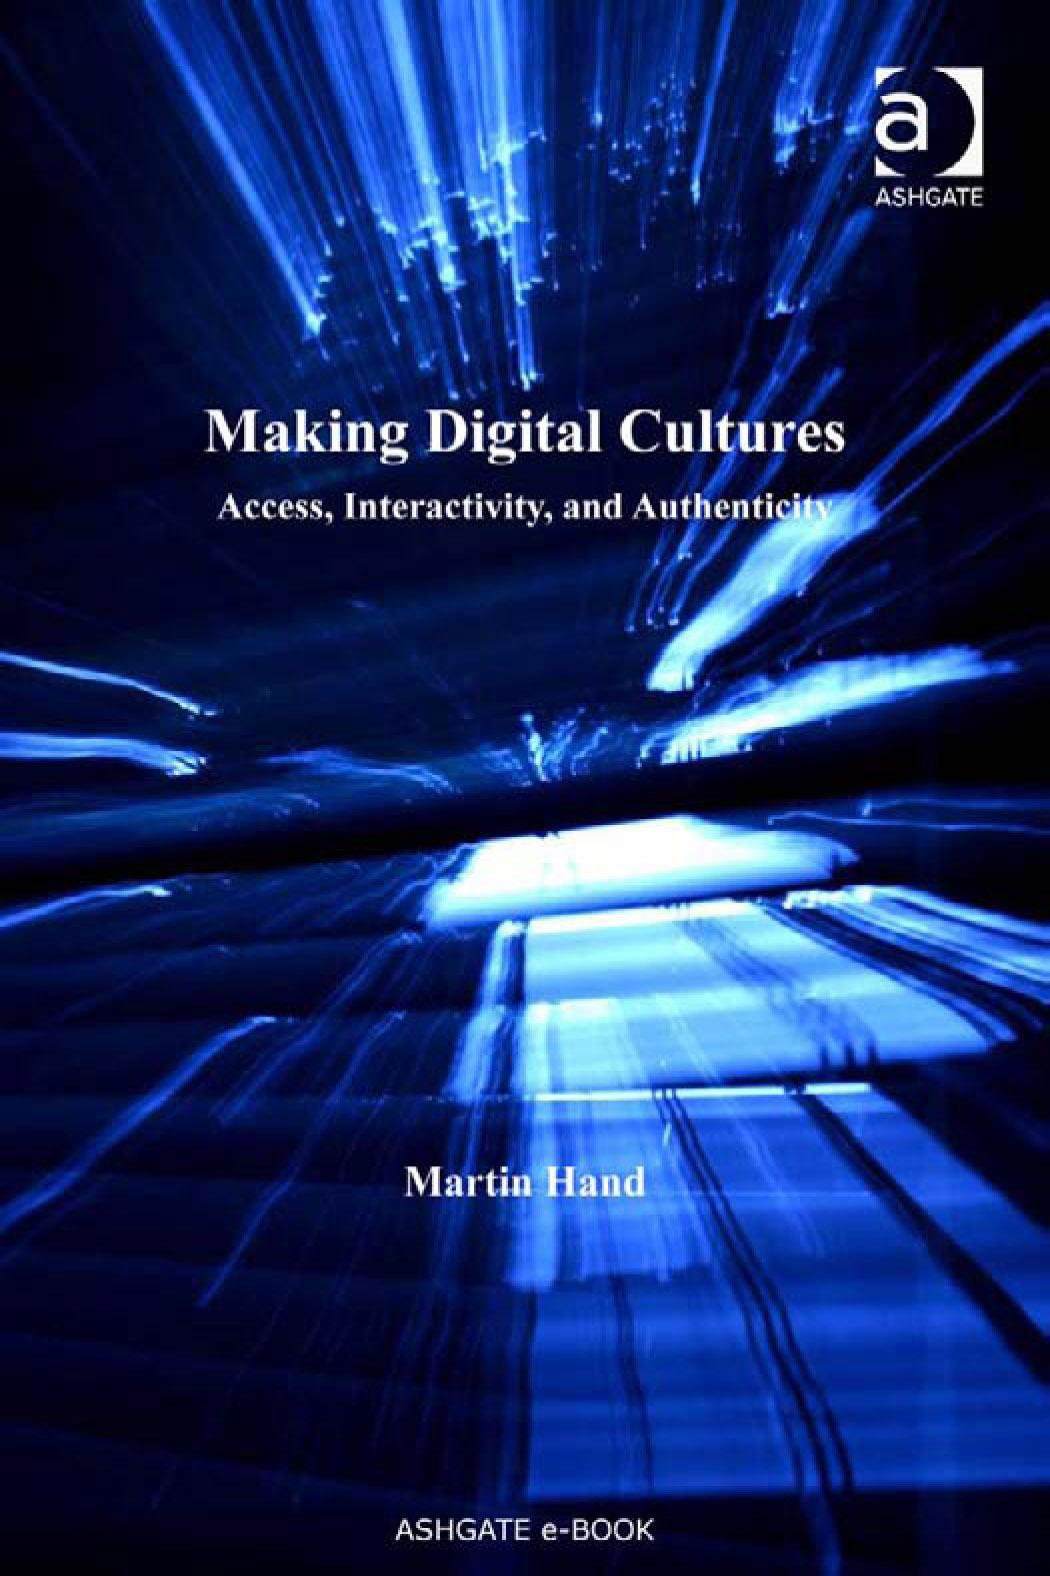 Making Digital Cultures: Access, Interactivity, and Authenticity